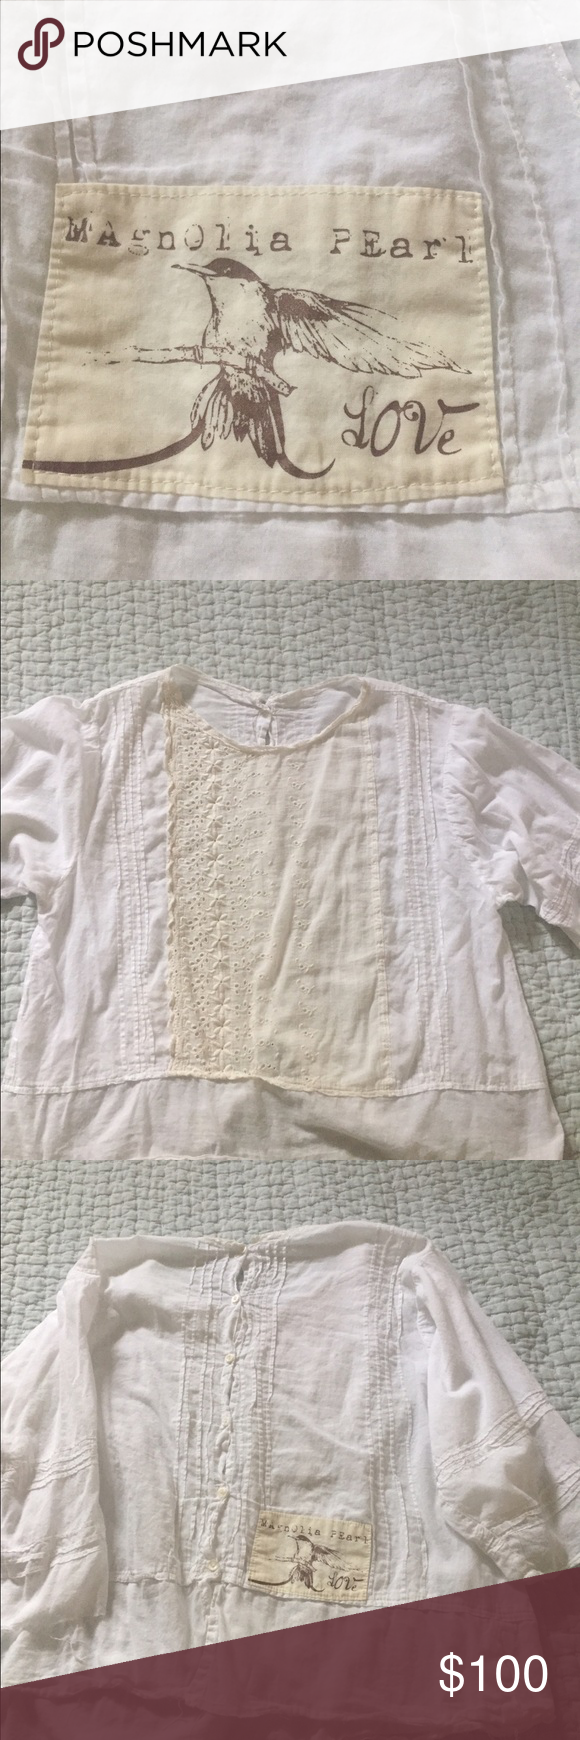 Magnolia Pearl linen blouse in cream Linen blouse great condition no stains worn maybe twice Magnolia Pearl  Tops Blouses